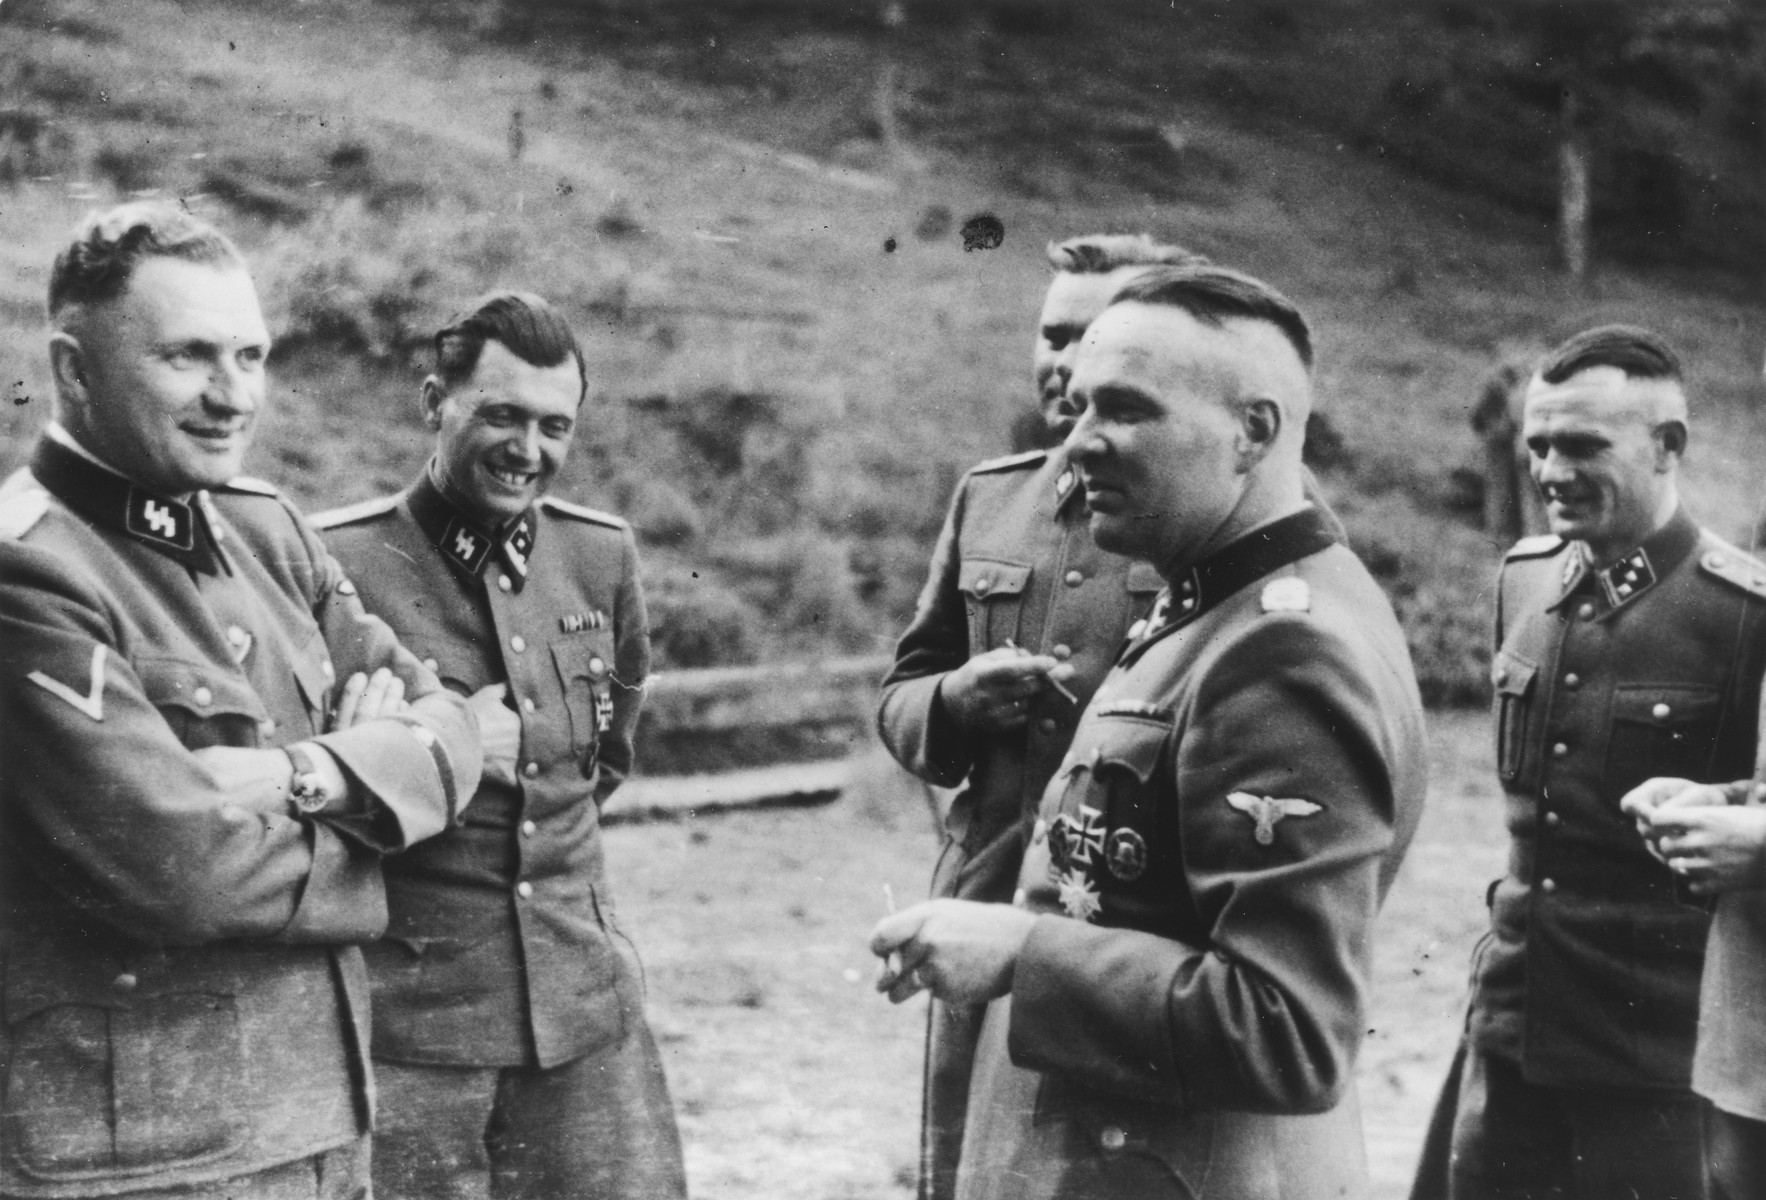 SS officers socialize at their retreat at Solahuette outside of Auschwitz.  From left to right are Richard Baer, Josef Mengele, Josef Kramer, Rudolf Hoess and Anton Thumann.  [Based on the officers visiting Solahutte, we surmise that the photographs were taken to honor Rudolf Hoess who completed his tenure as garrison senior on July 29.]